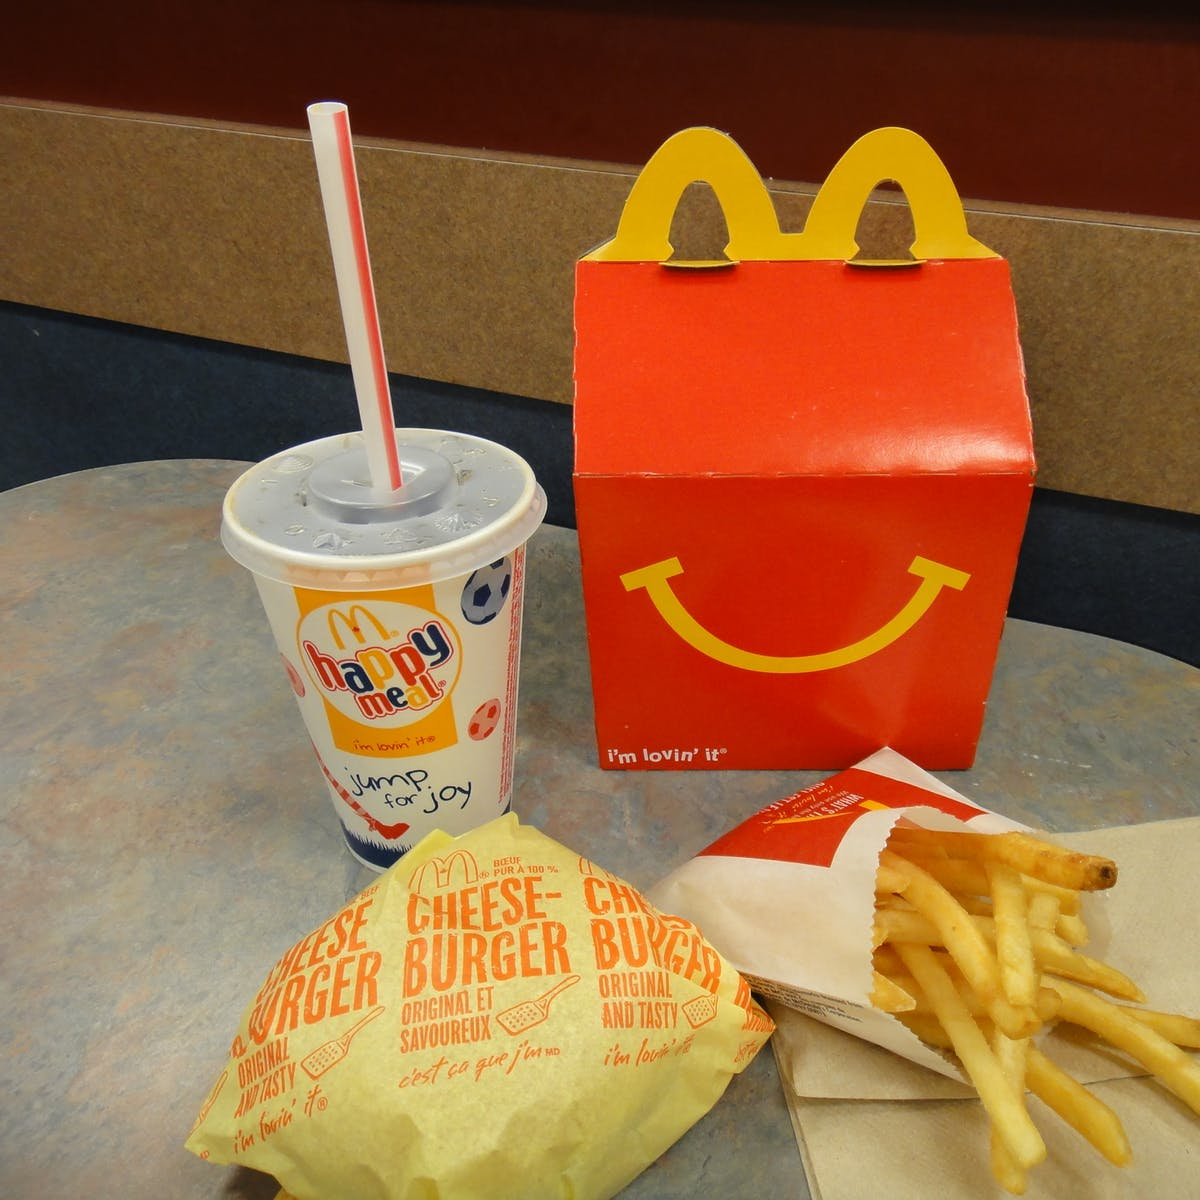 Eating Junk Food as a Kid Could Distort Your Appetite